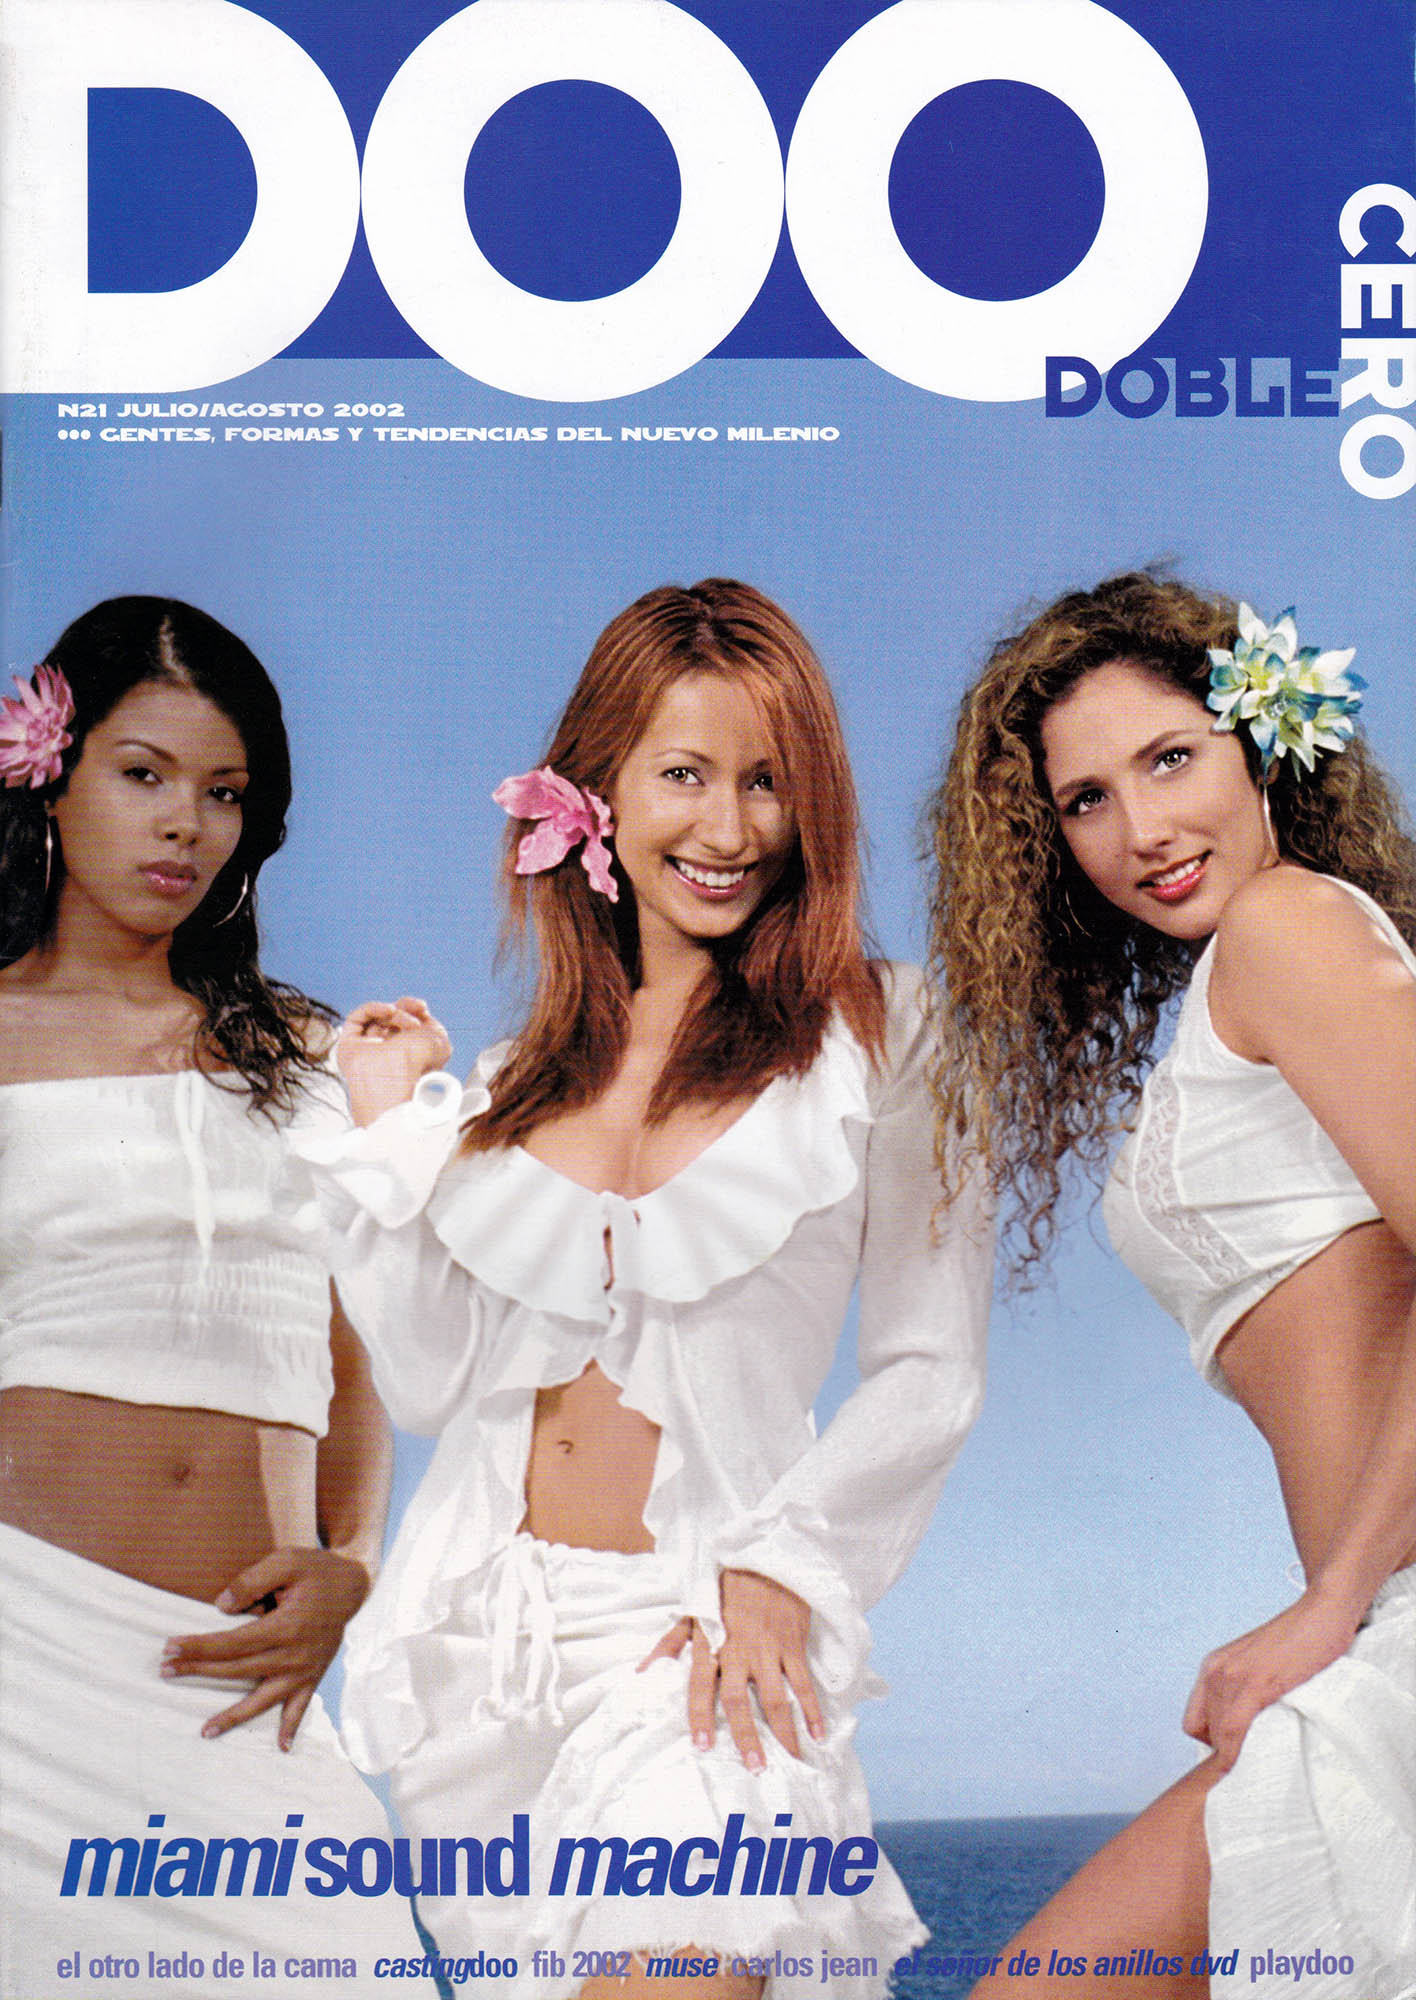 Miami Sound Machine | Doblecero - El Corte Inglés | jul 2002